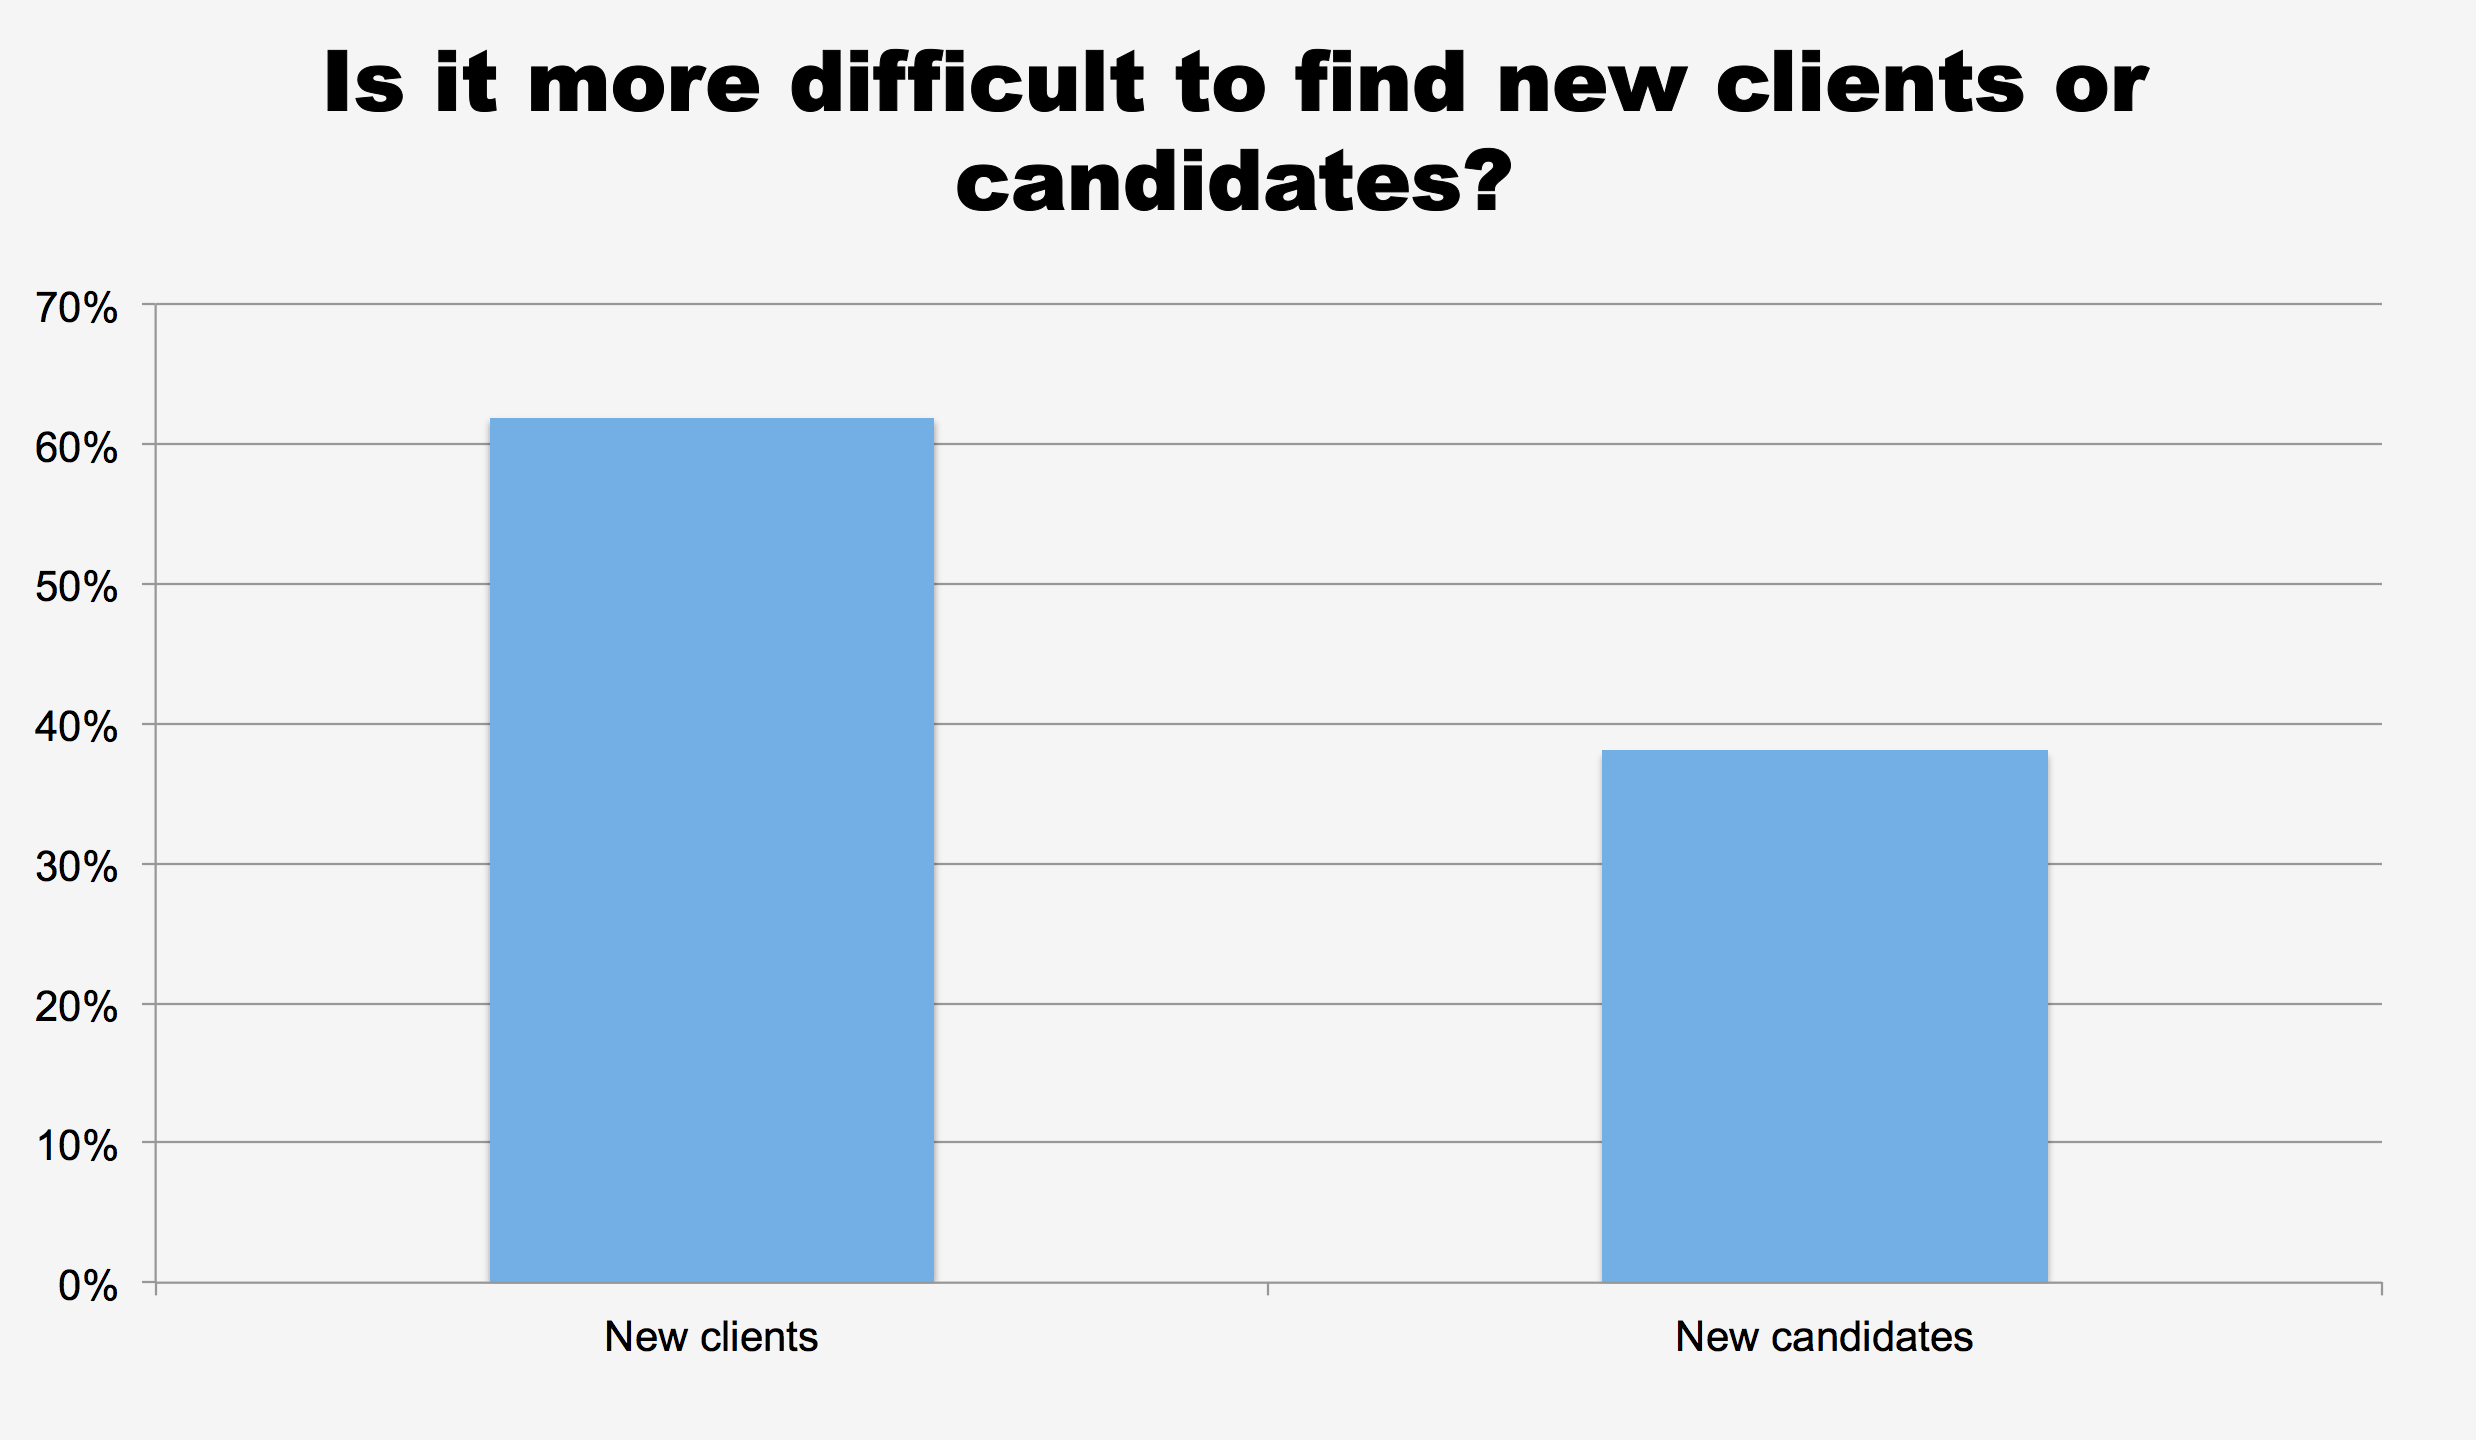 Is it more difficult to find new clients or candidates?